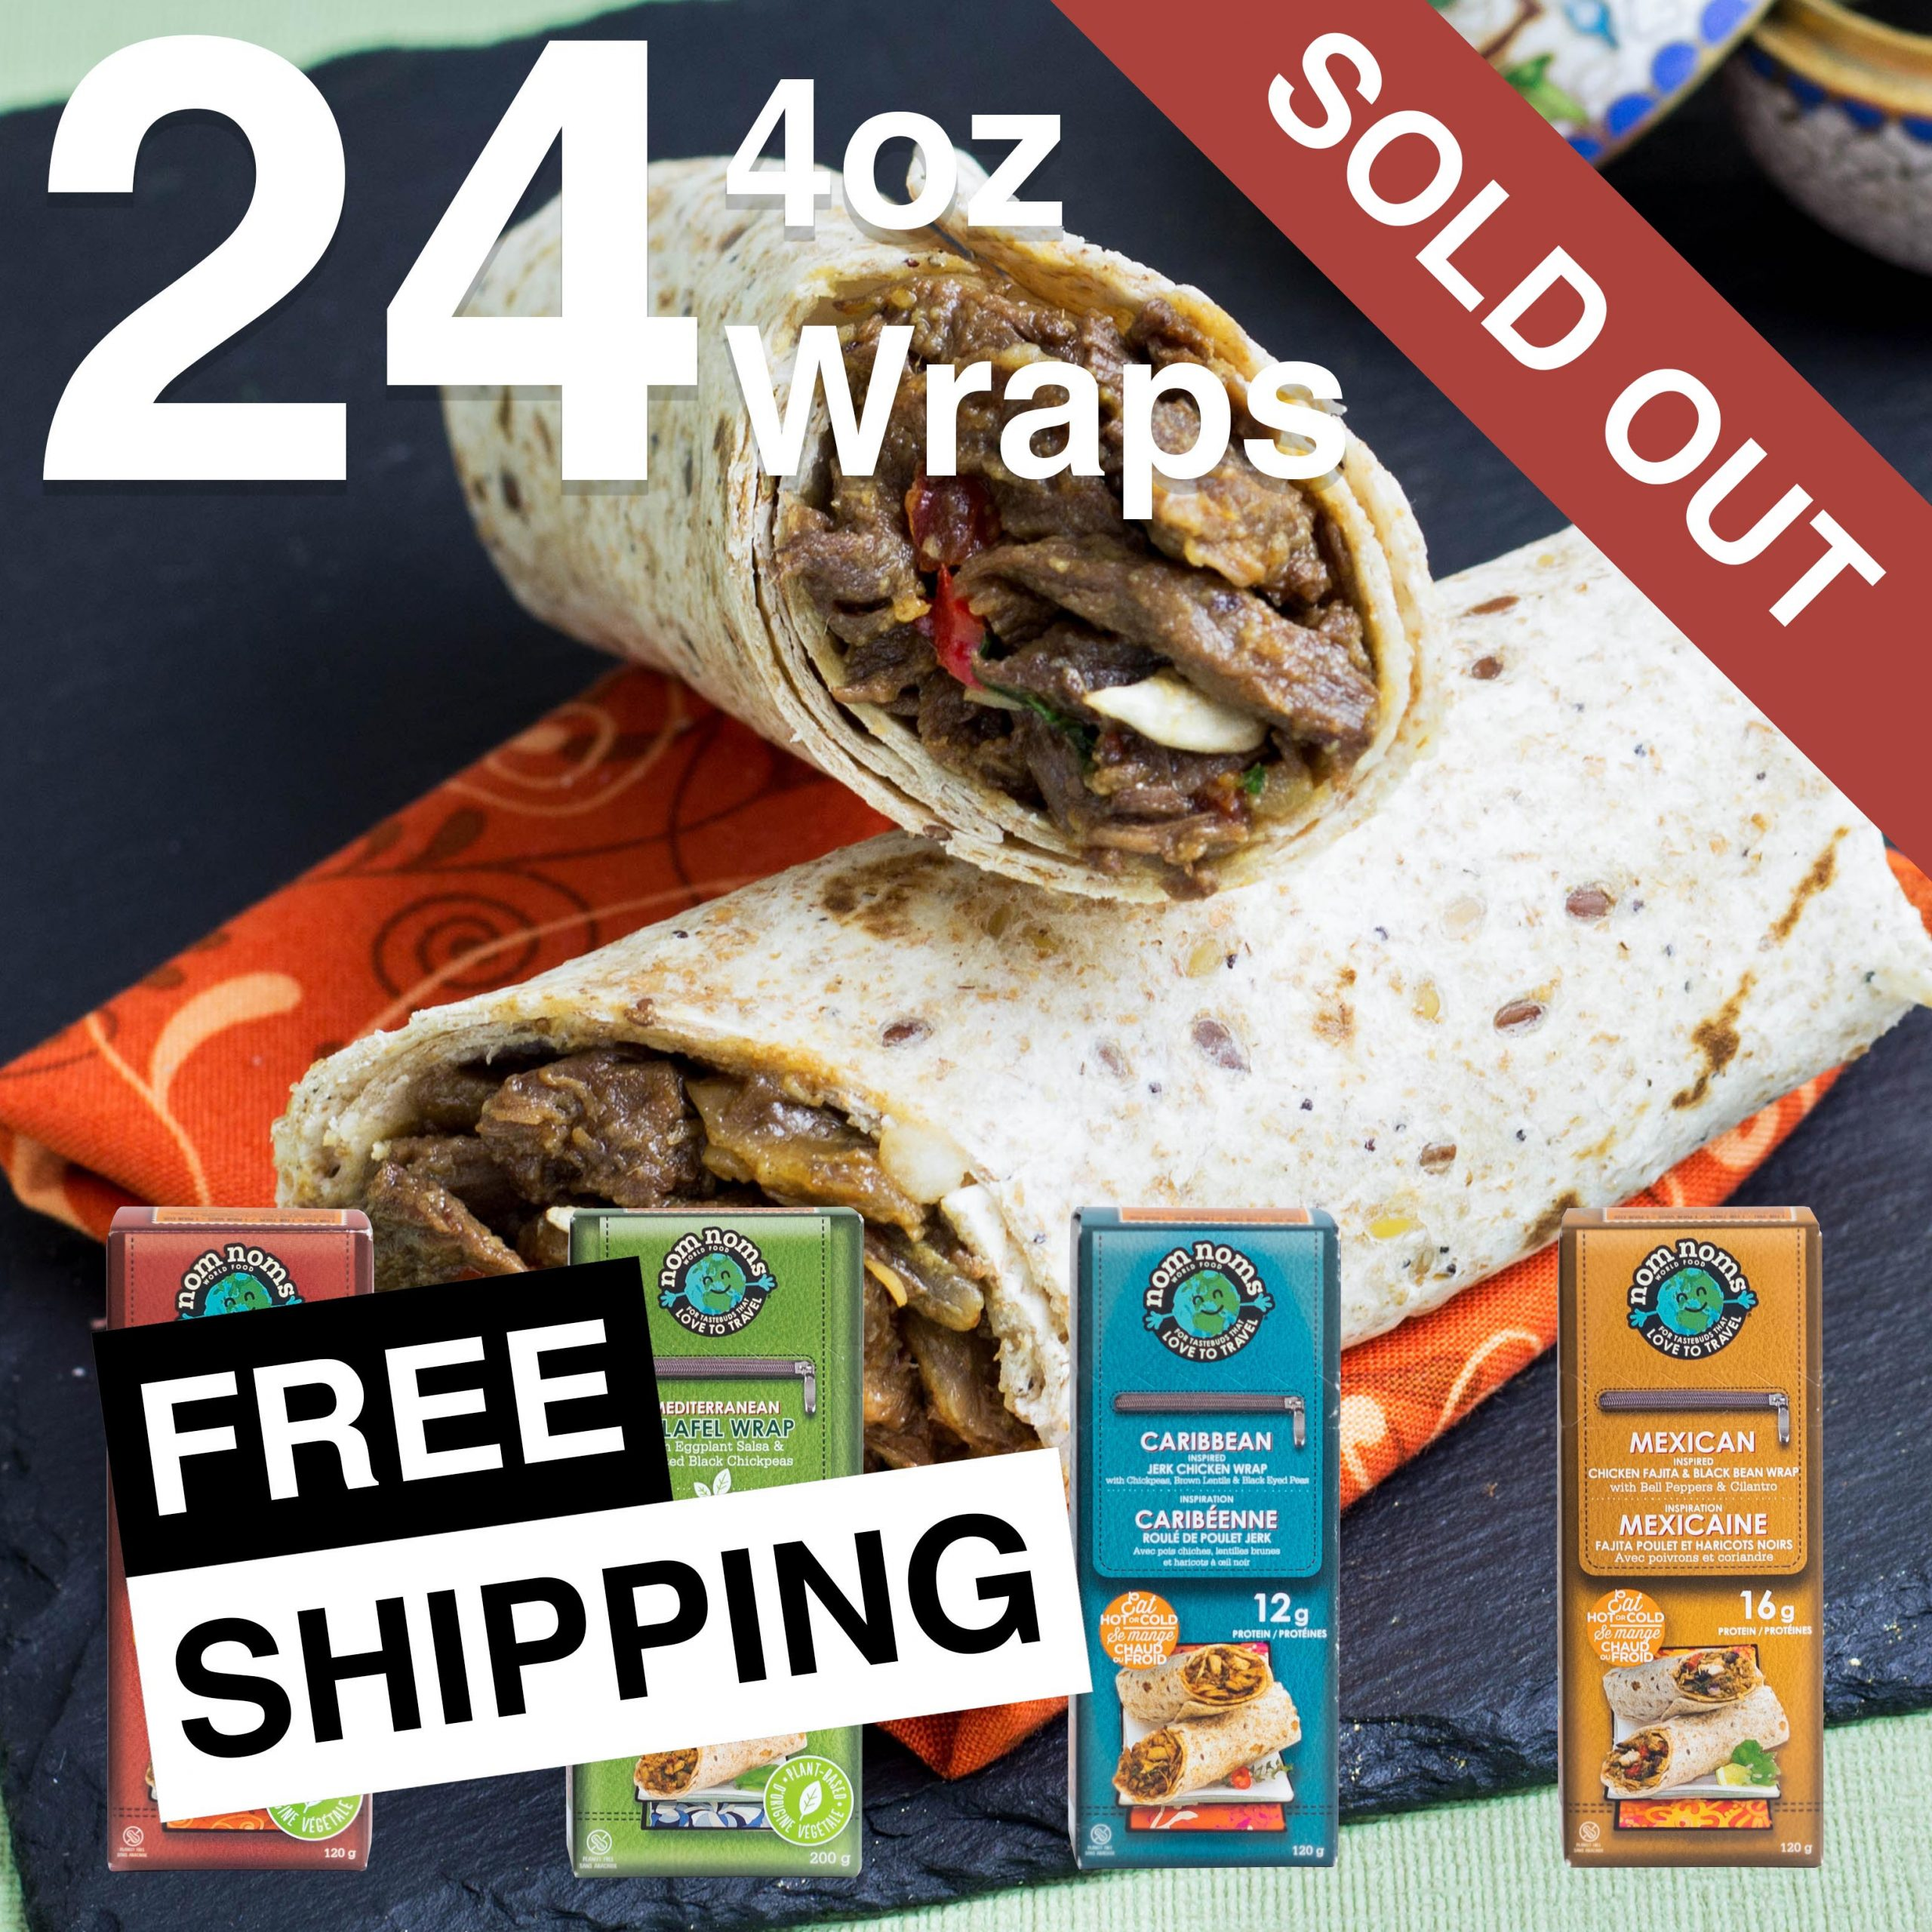 24 4oz Wraps Feature Sold Out